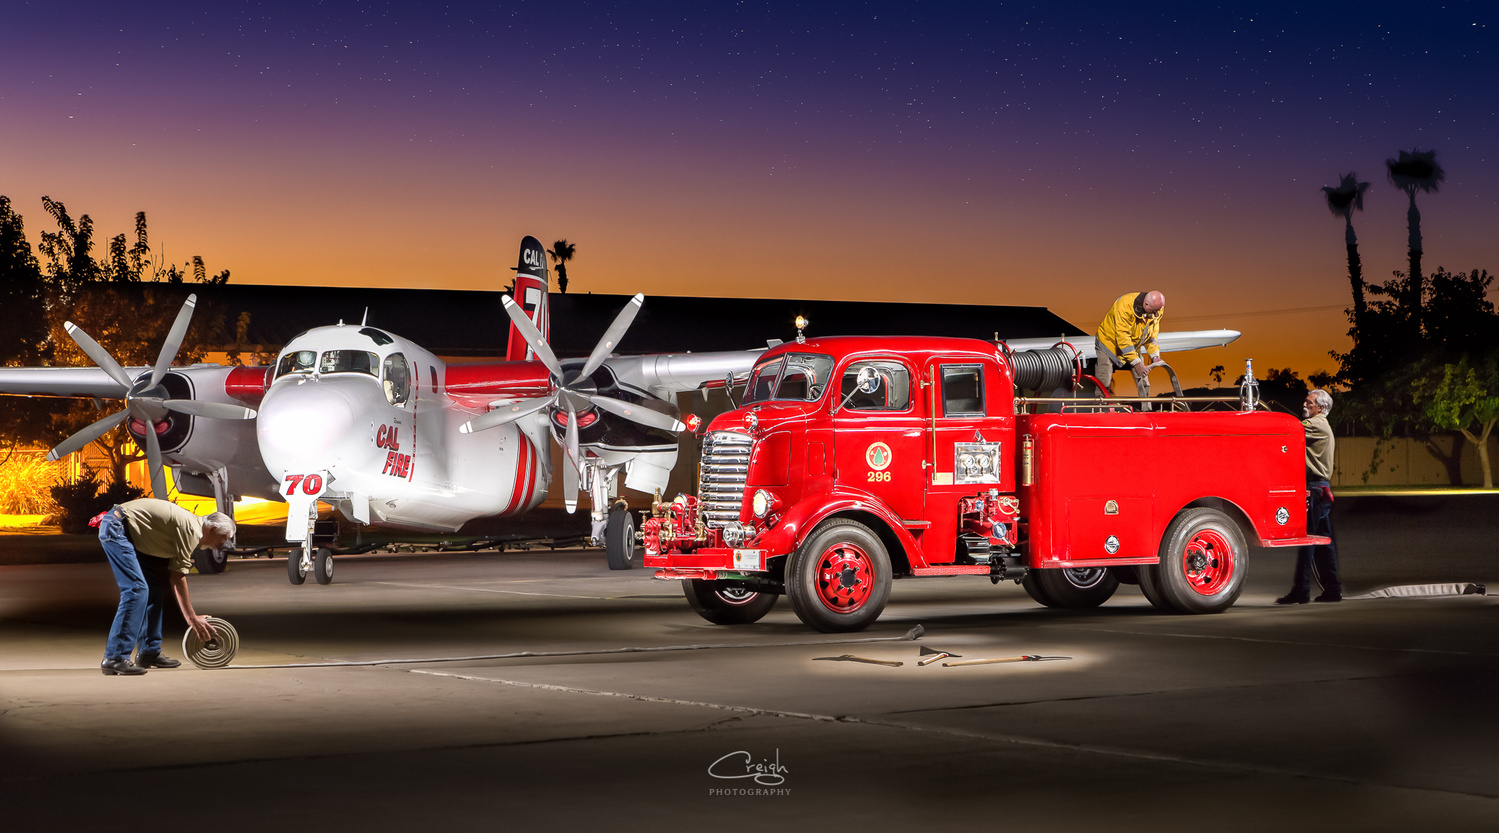 Long Days Fighting Fires by Creigh McIntyre